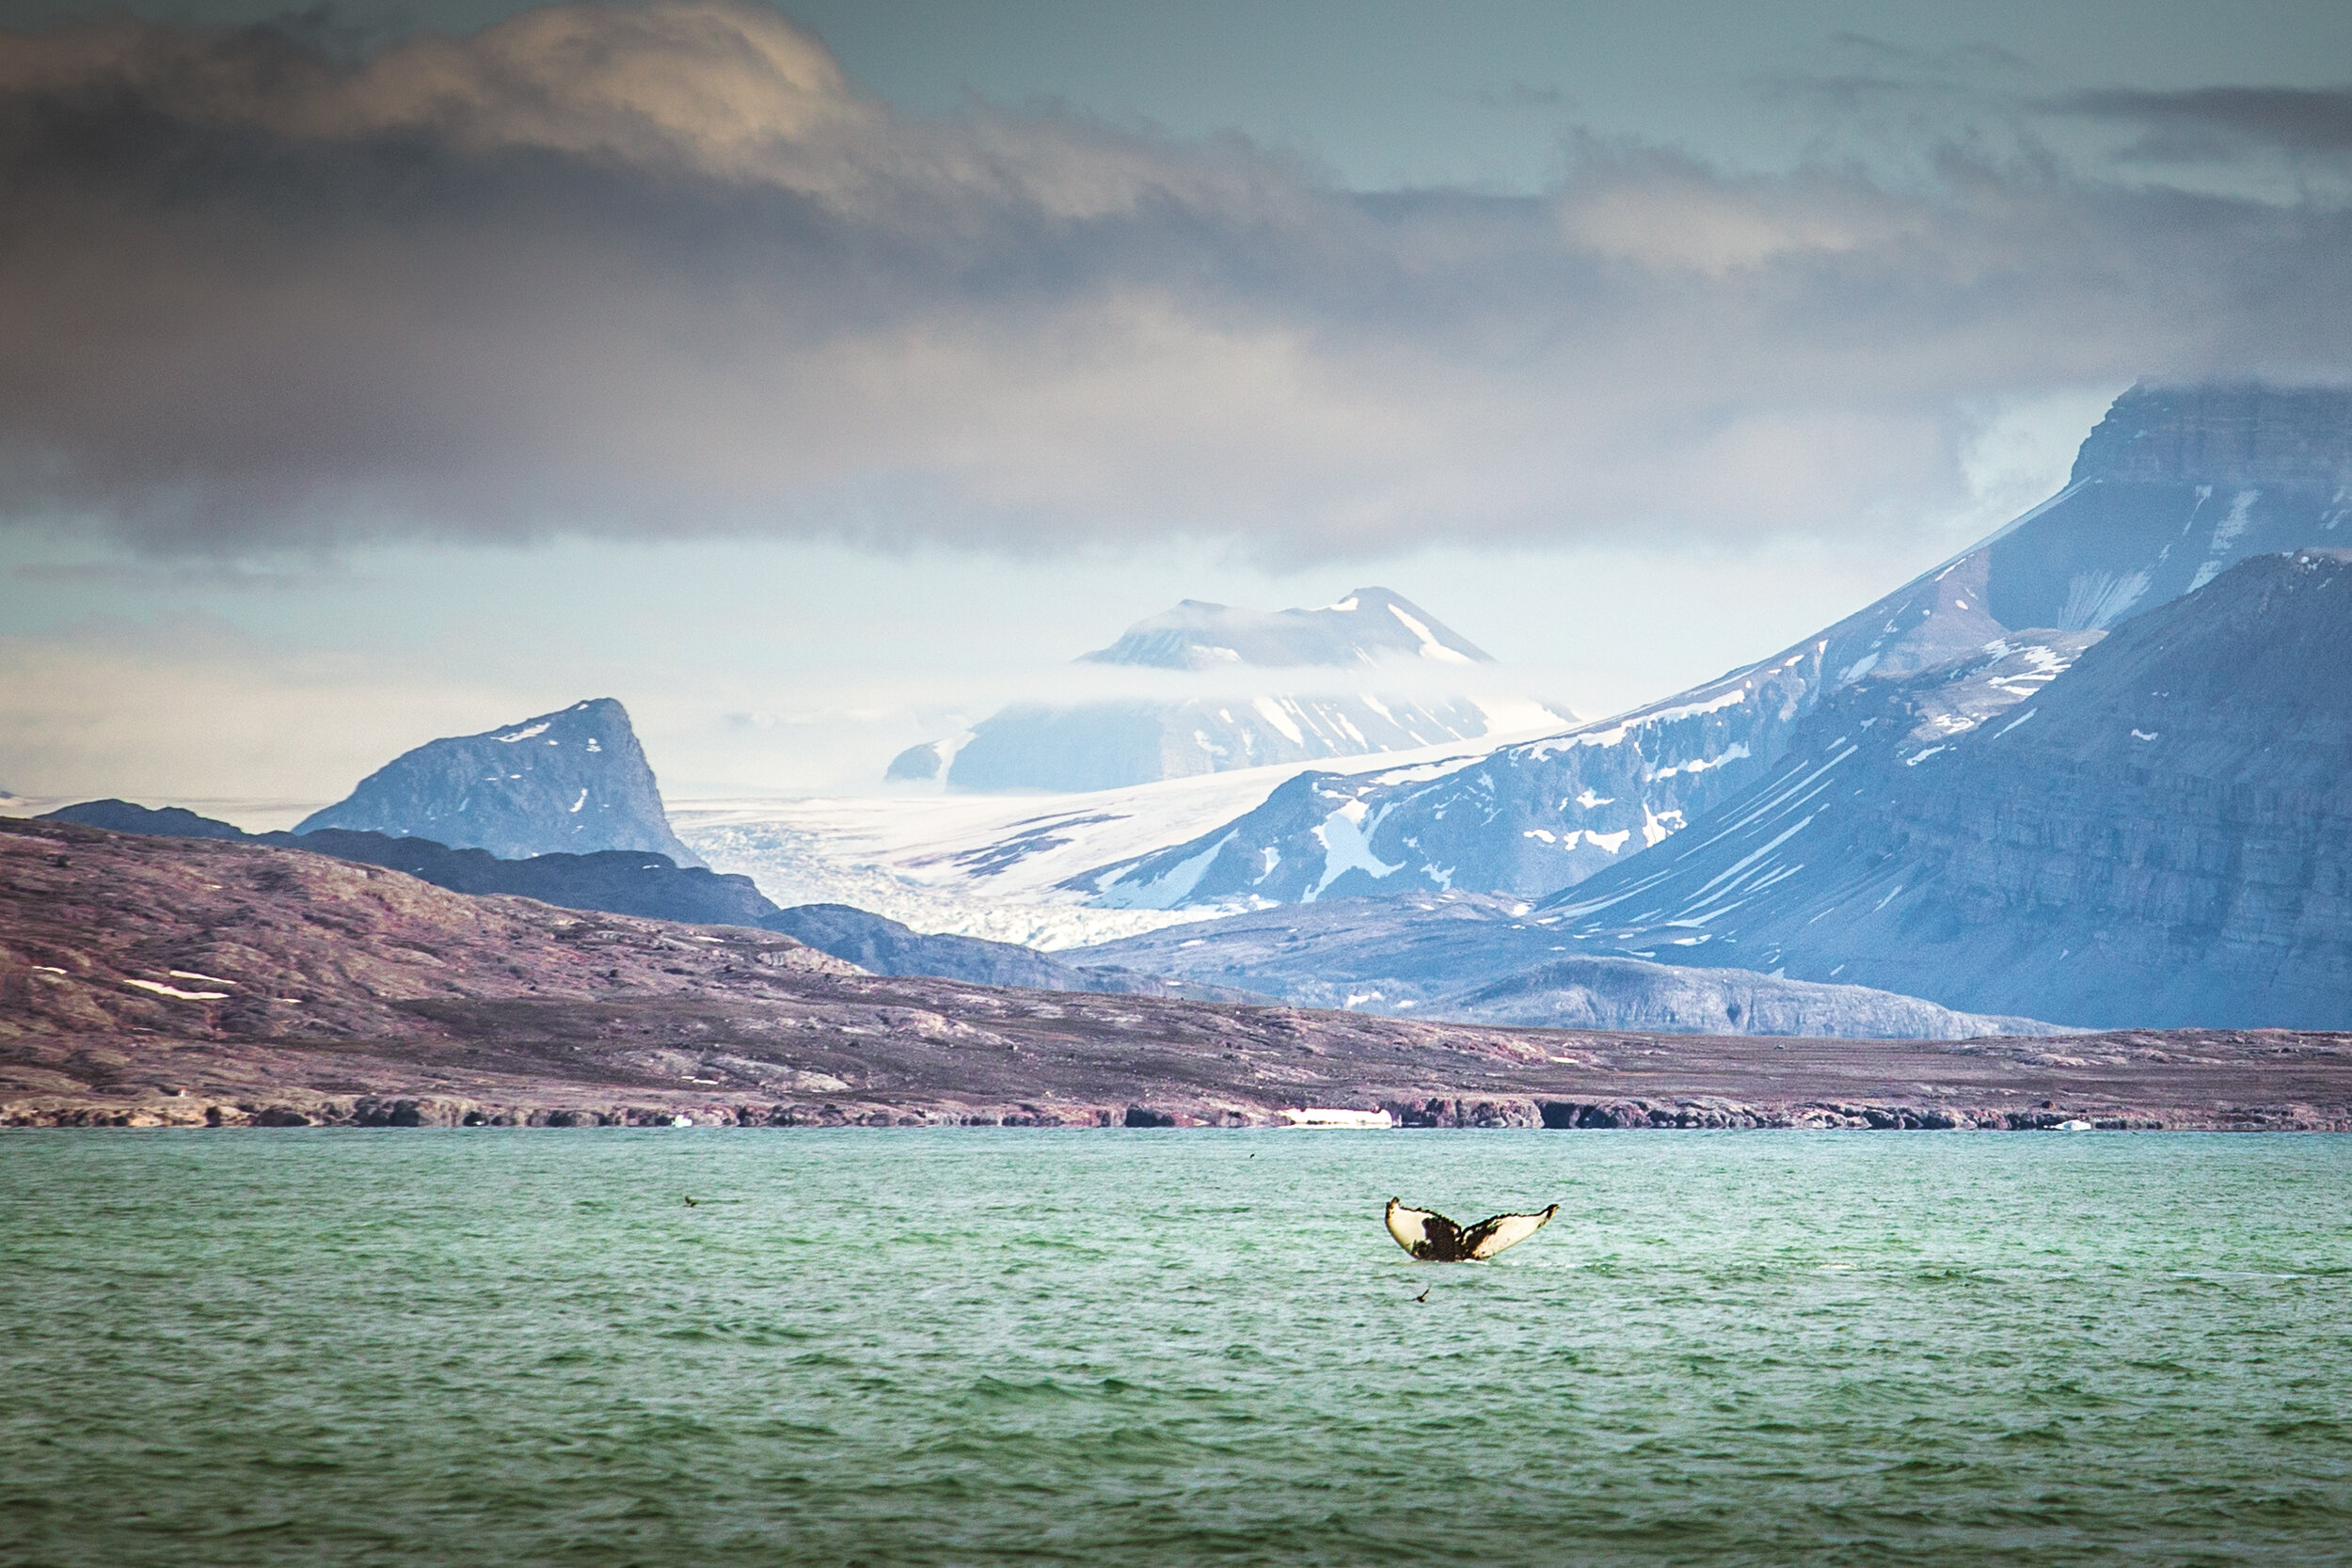 A humpback hale in it's element in Kongsfjord, Svalbard